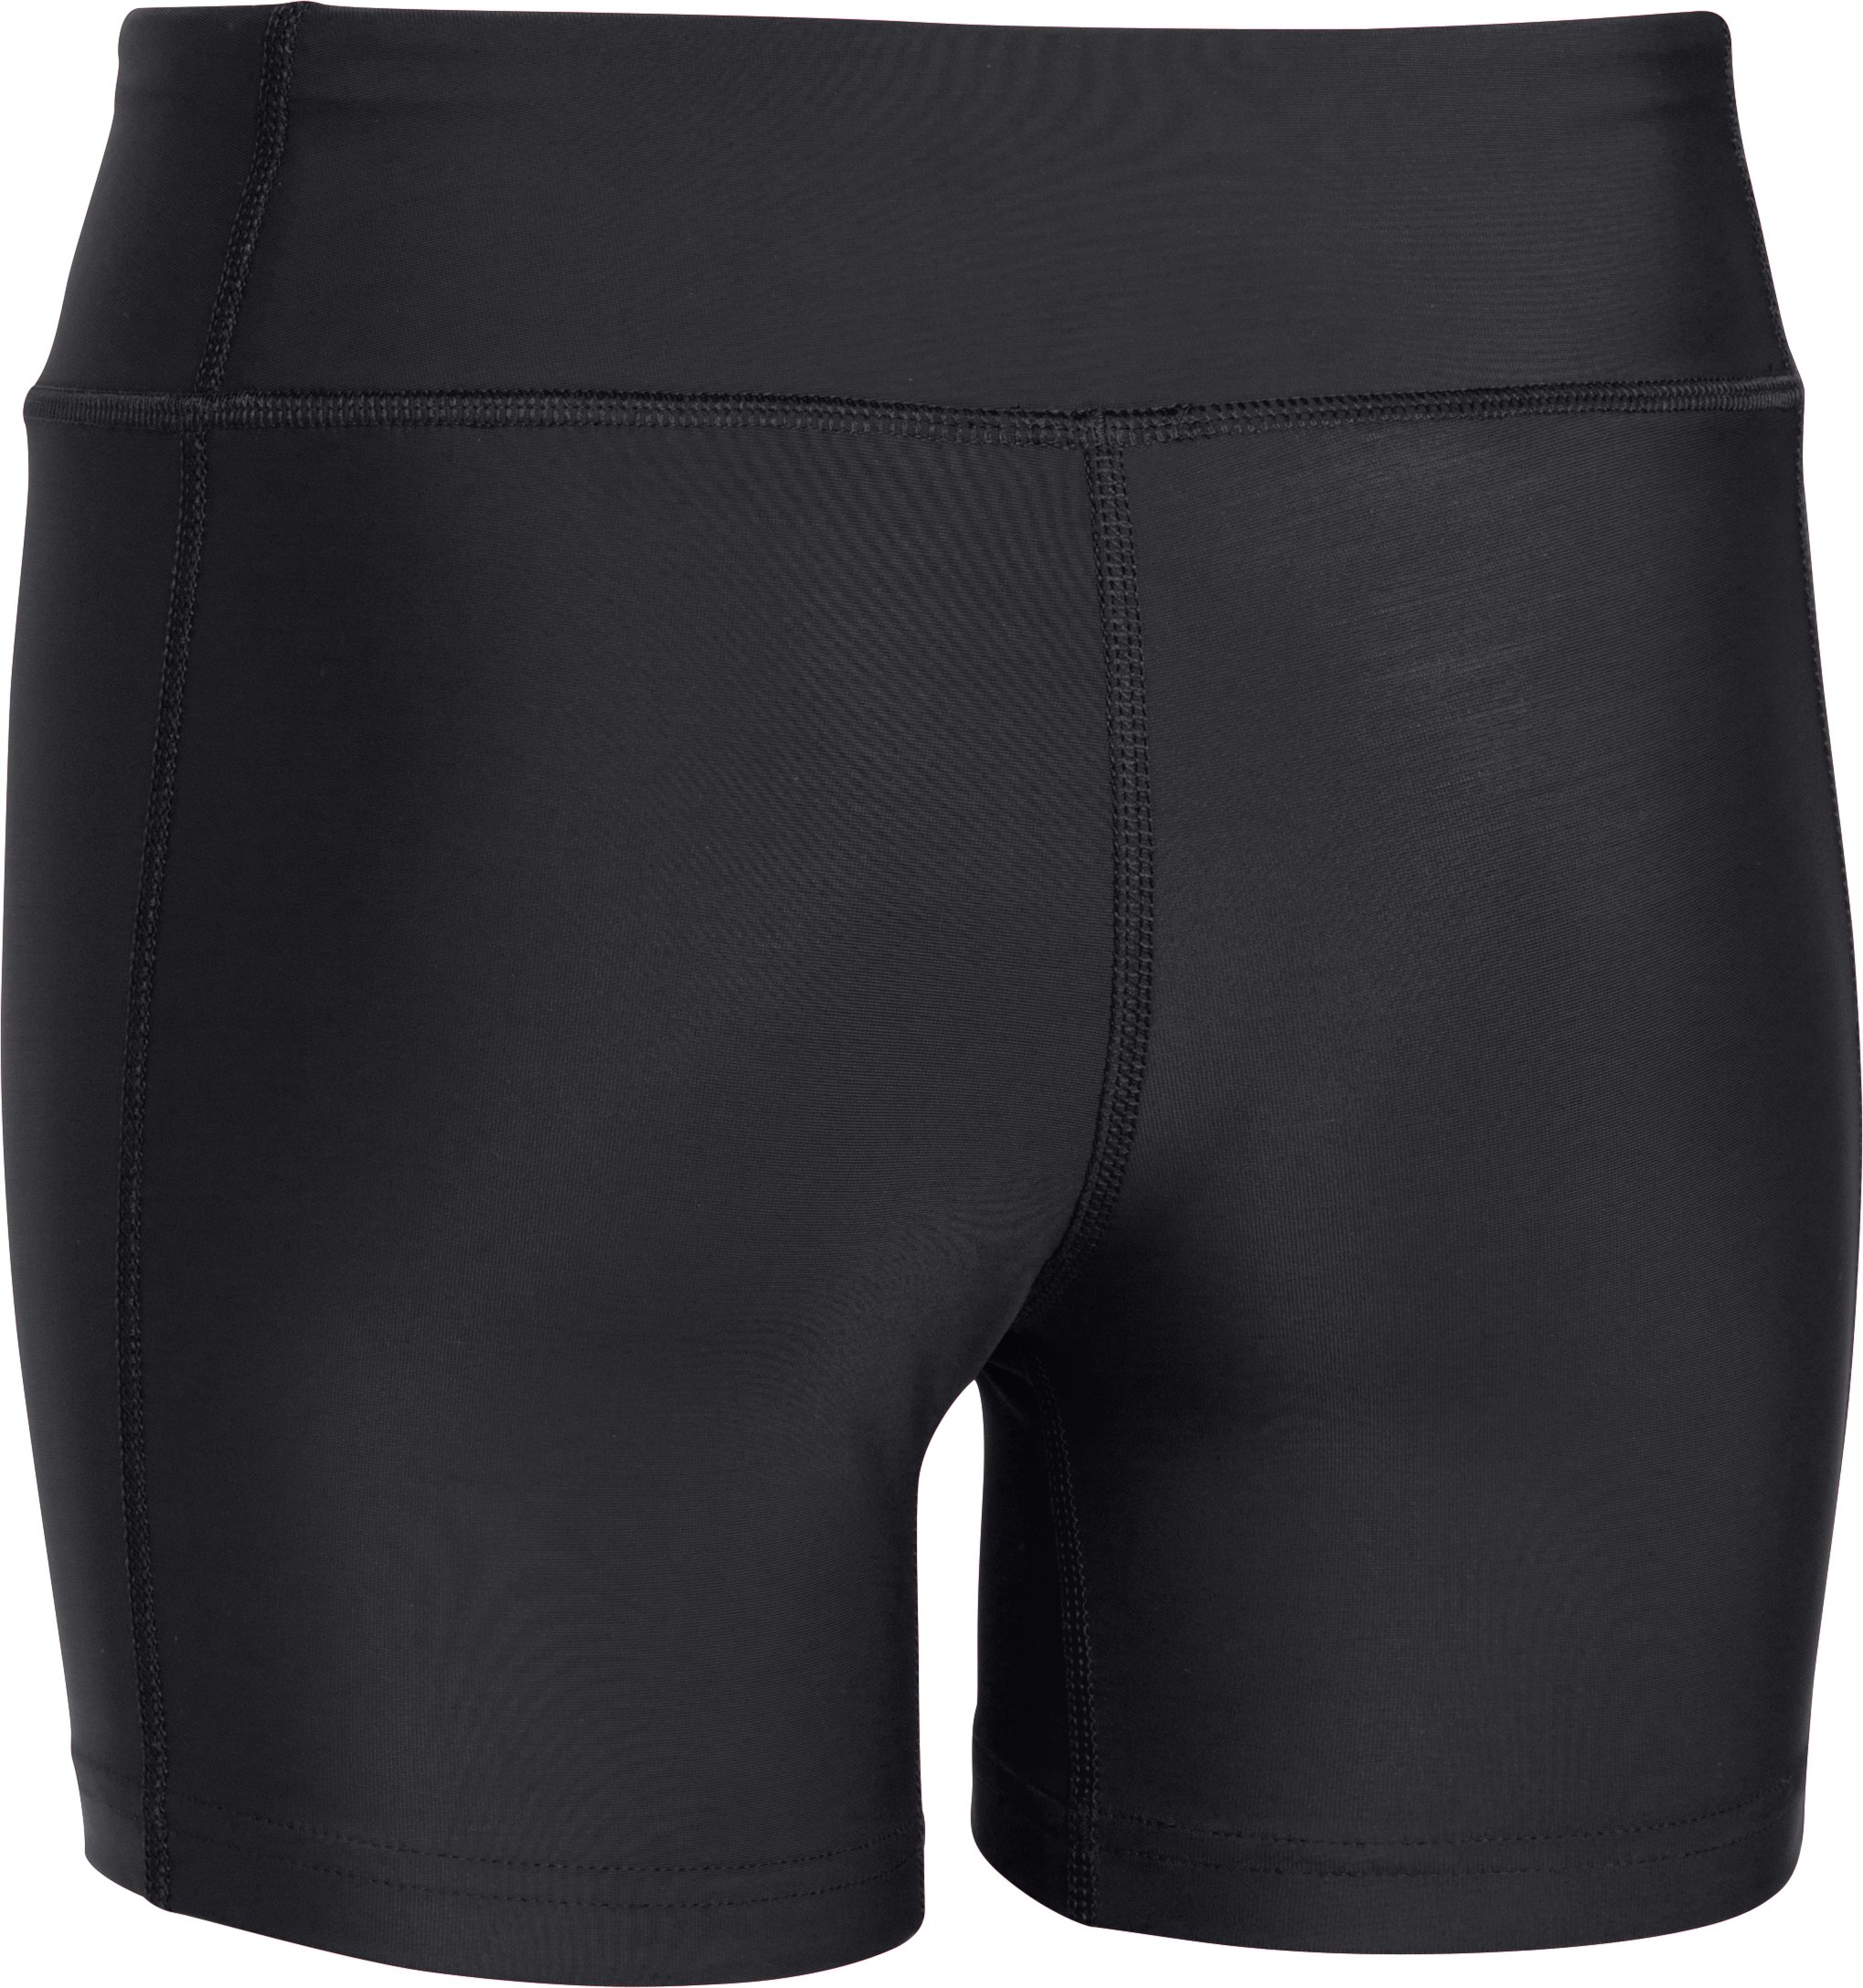 "Girls' UA On The Court 4"" Shorts, Black"